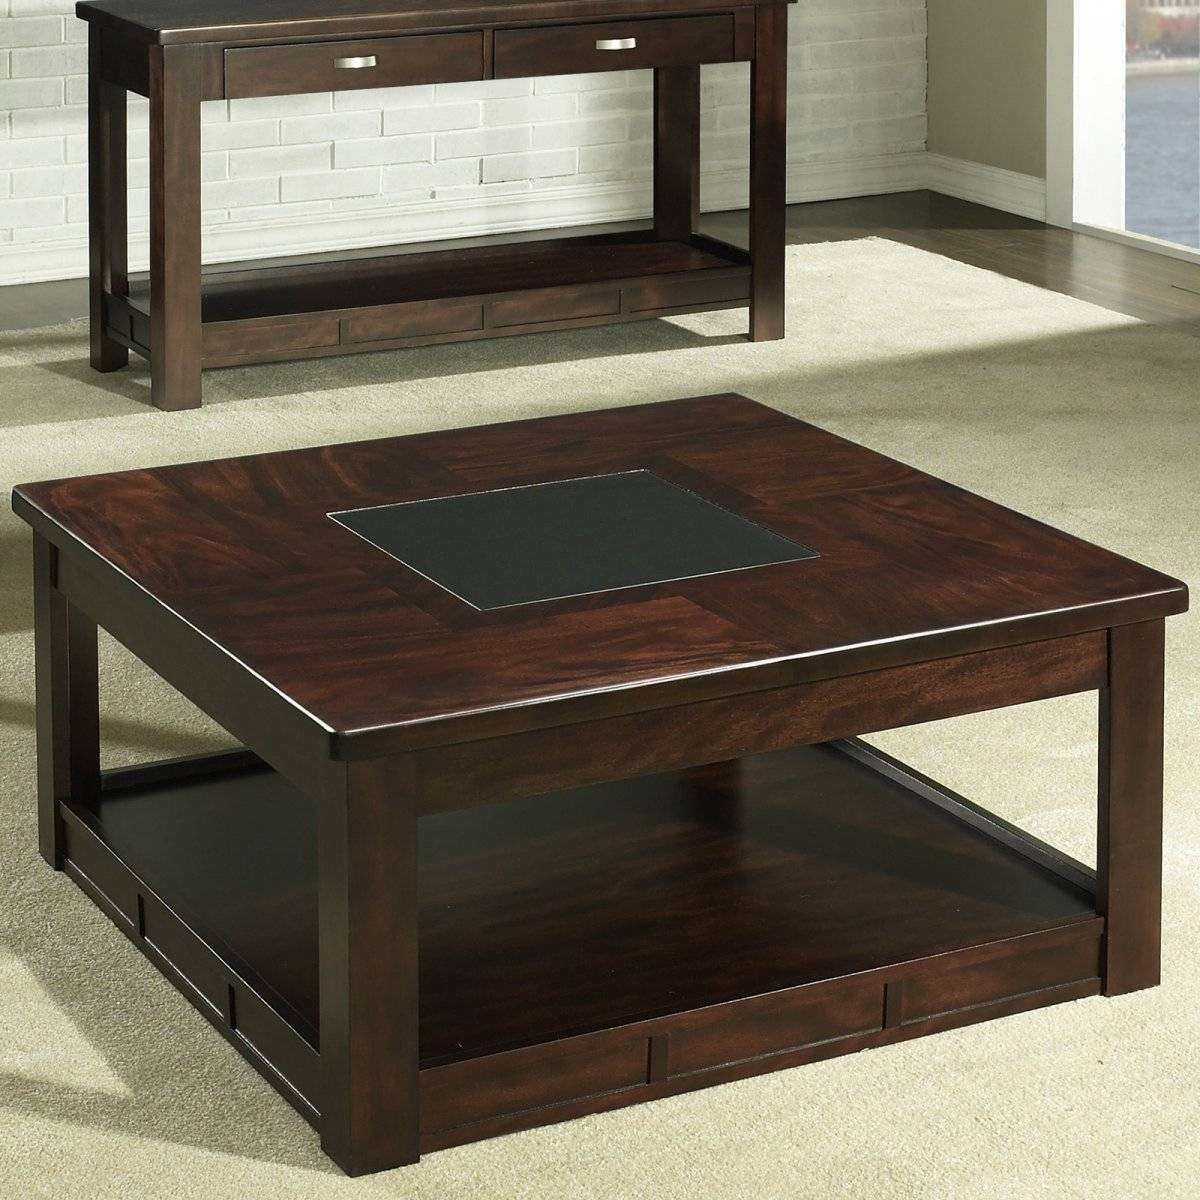 Coffee Table: Chic Small Square Coffee Table Design Ideas Square regarding Dark Wood Square Coffee Tables (Image 5 of 30)